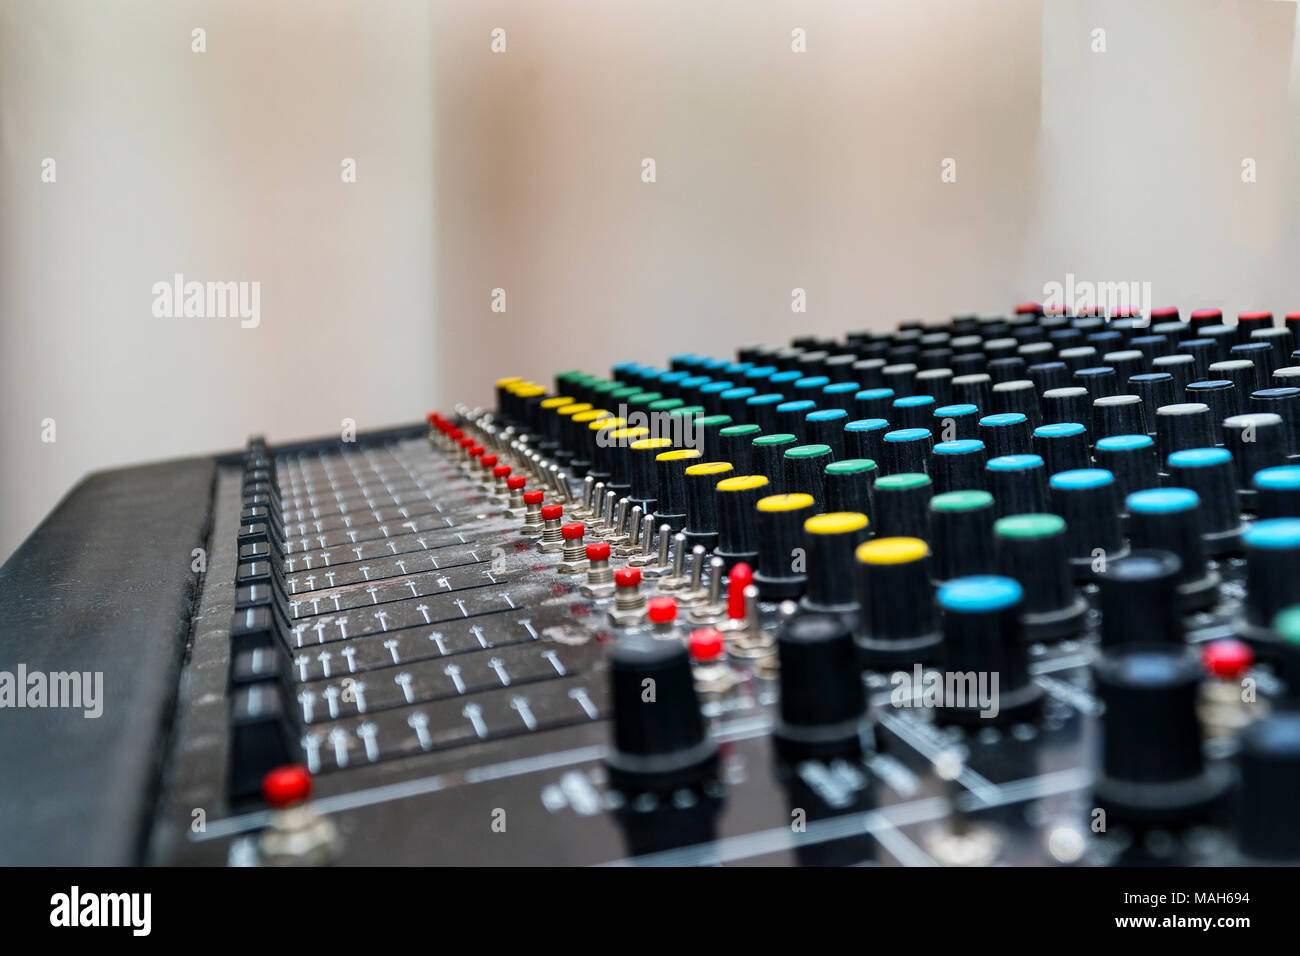 Mixing console, mixing sound Board Stock Photo